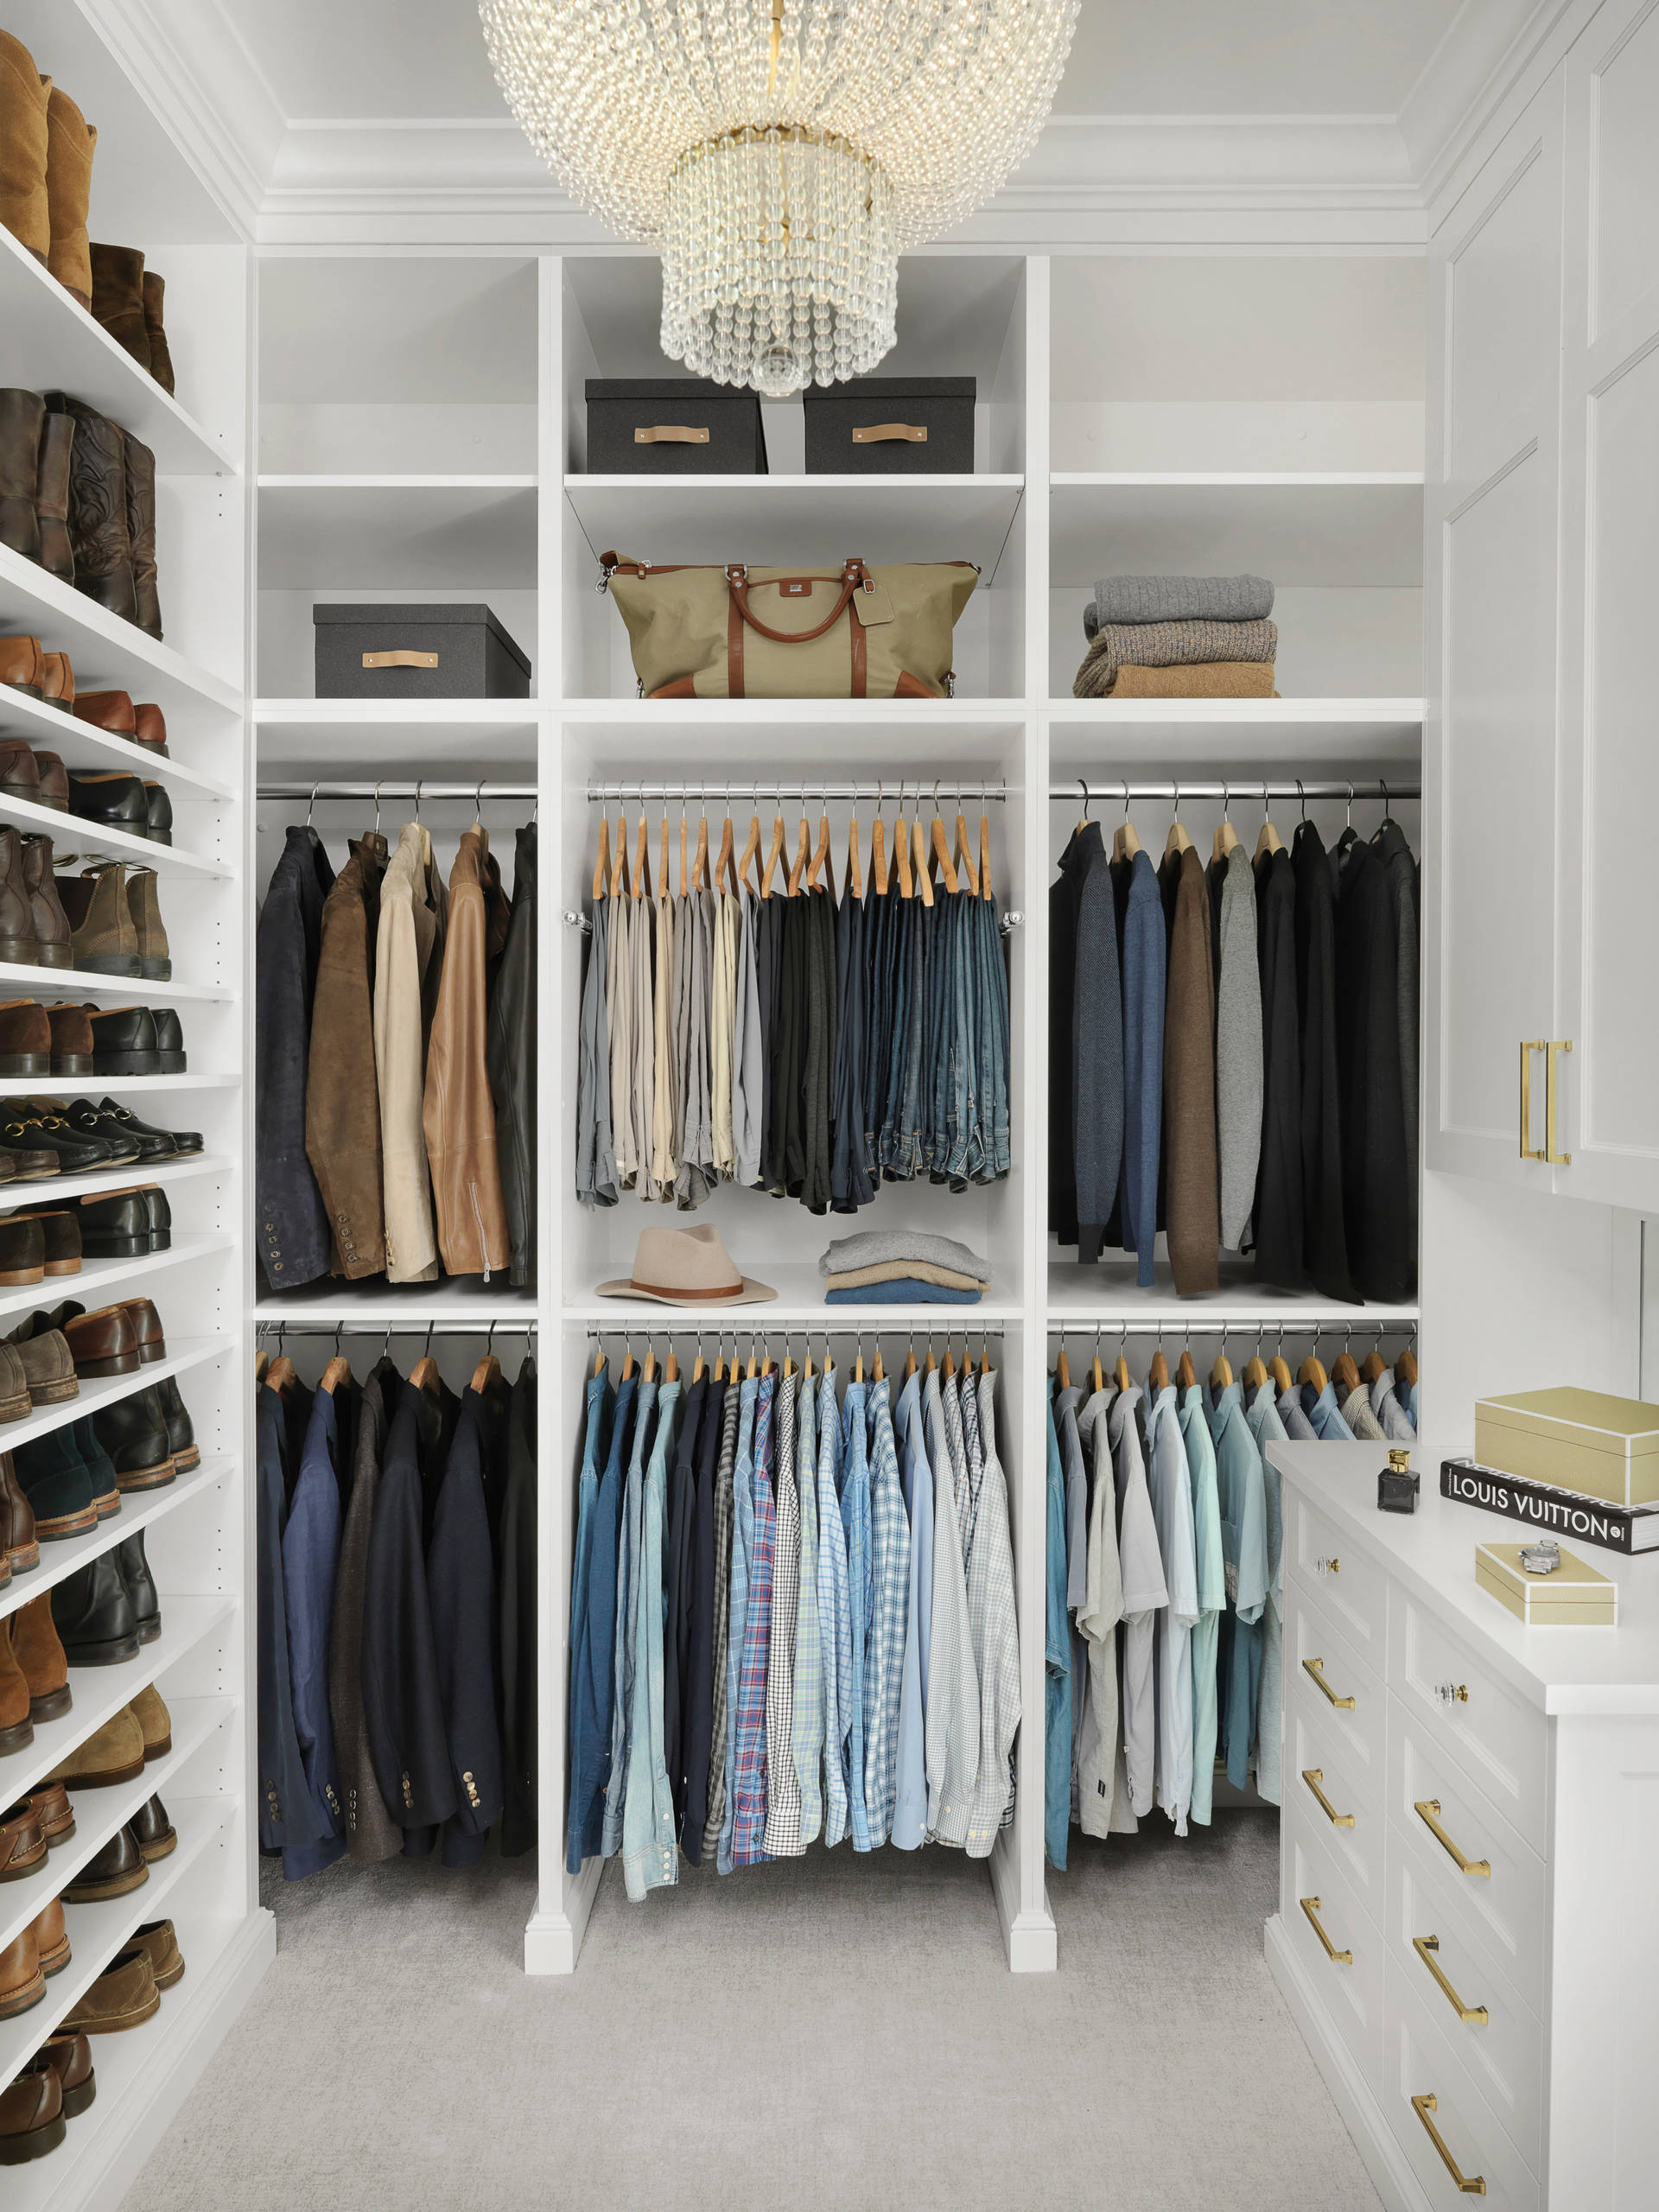 75 Beautiful Dressing Room Pictures Ideas February 2021 Houzz